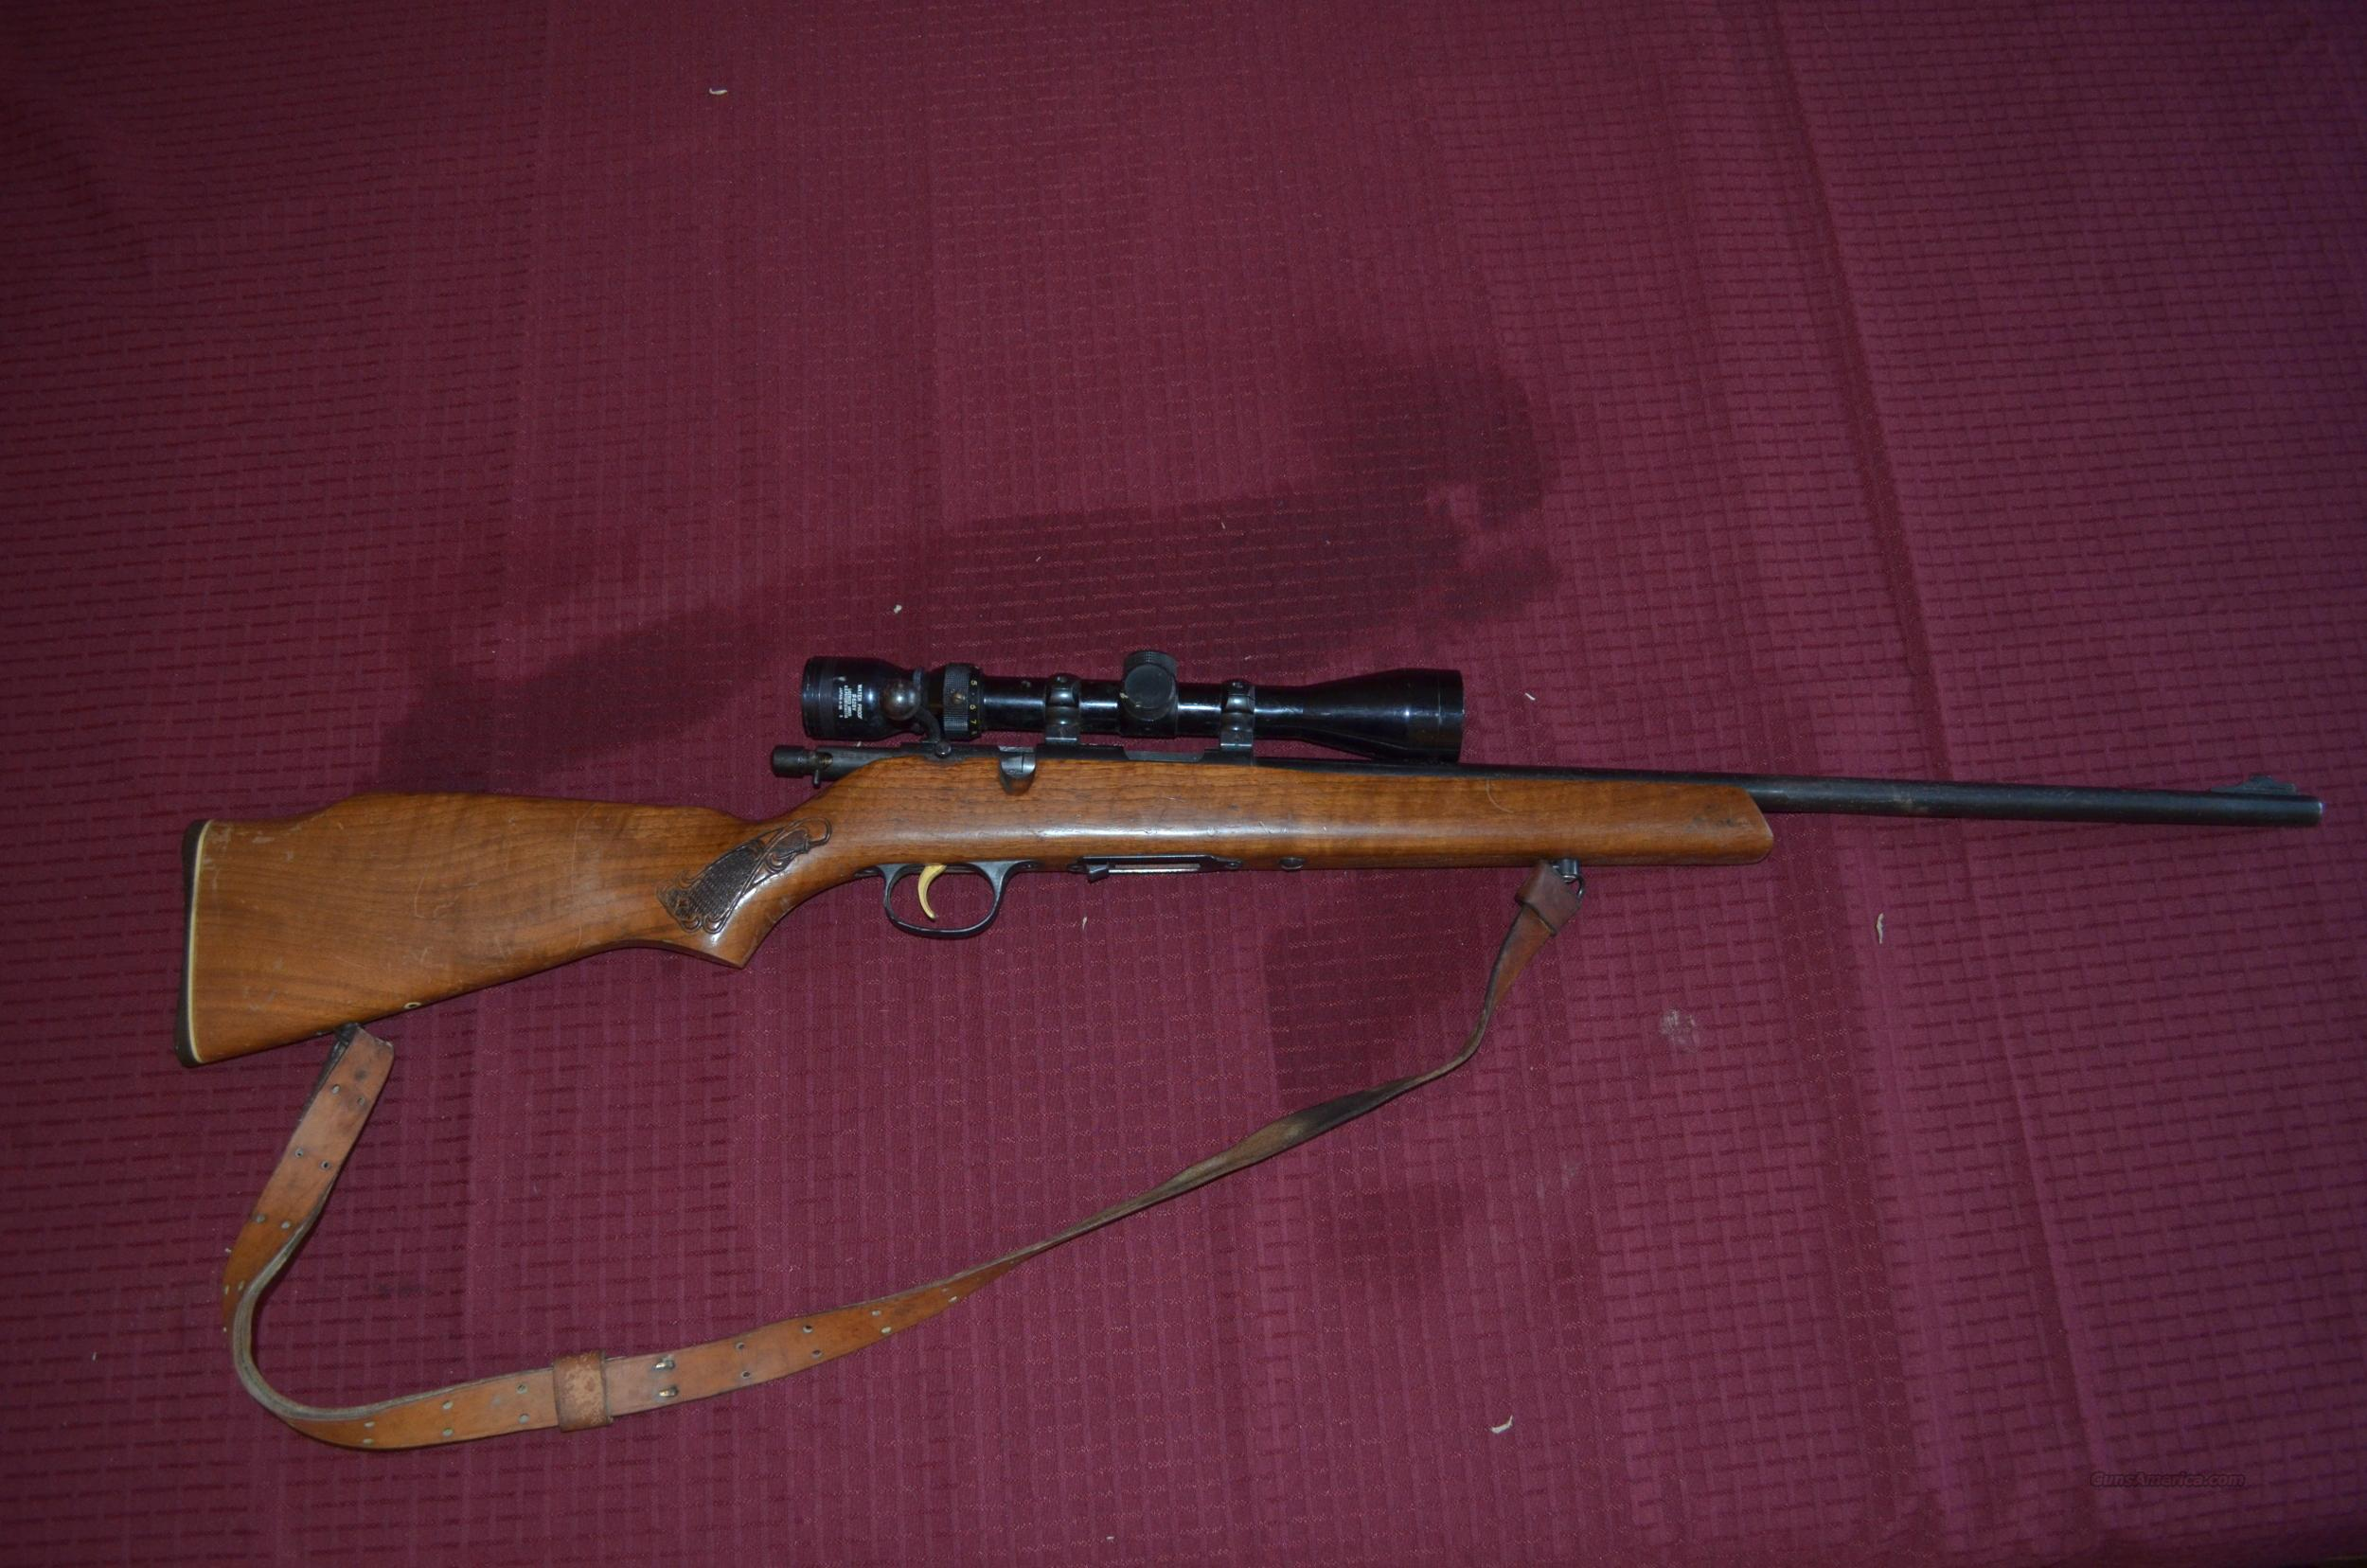 Marlin 782  Guns > Rifles > Marlin Rifles > Modern > Bolt/Pump